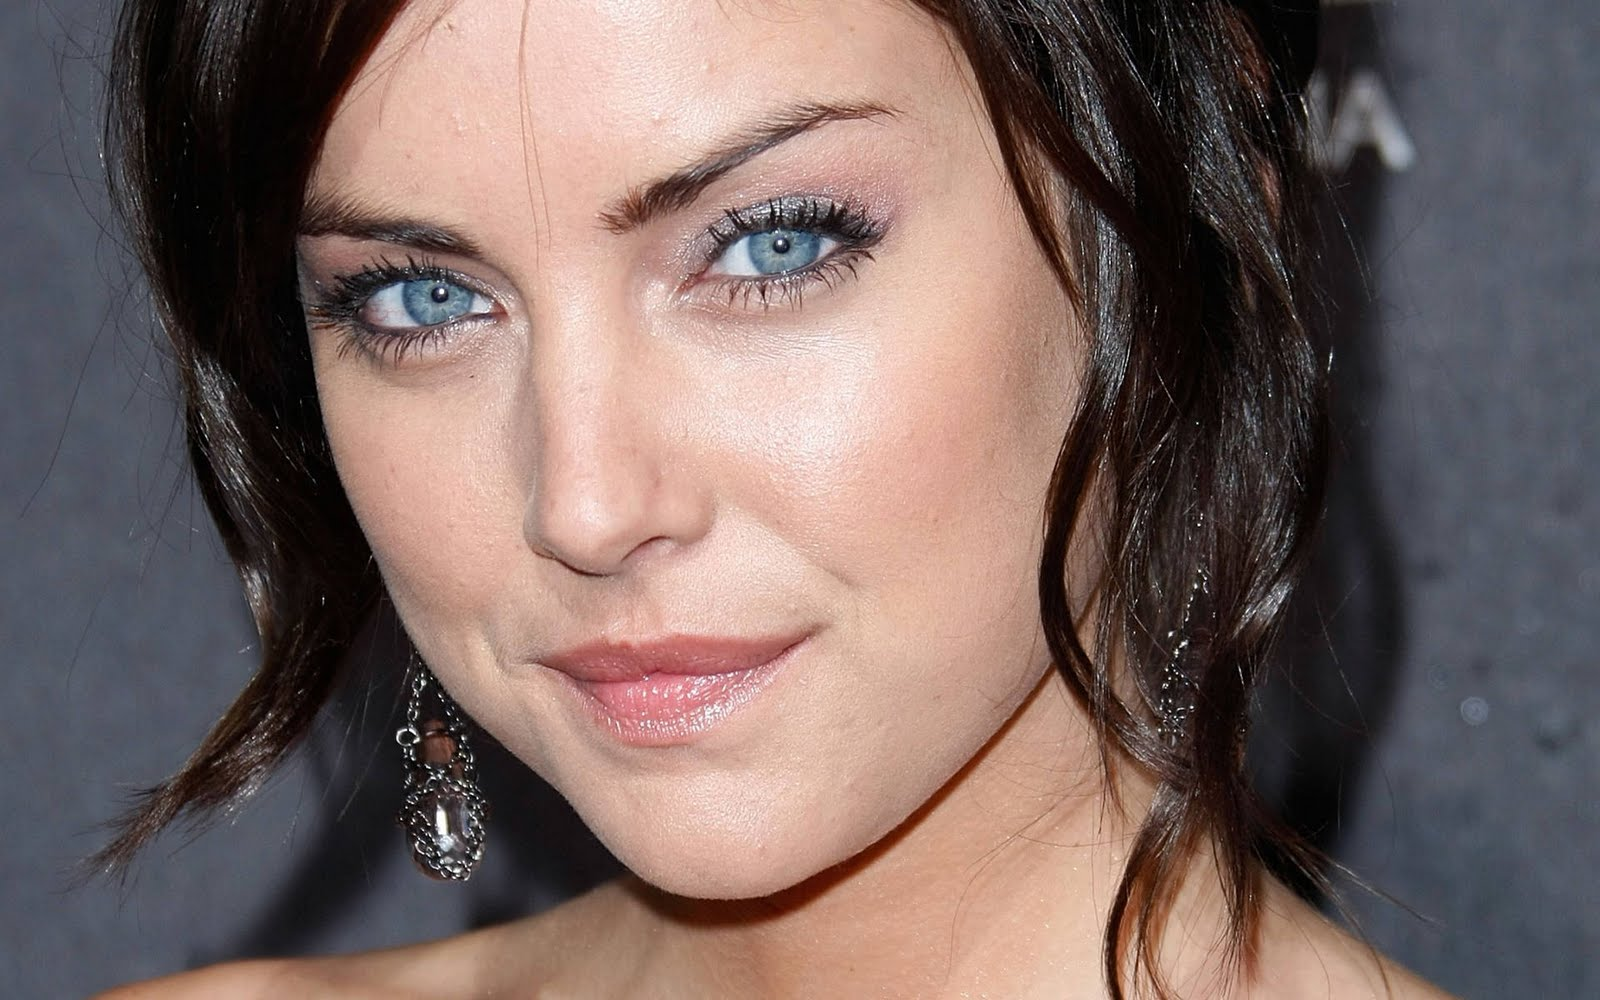 1600x1000 - Jessica Stroup Wallpapers 25